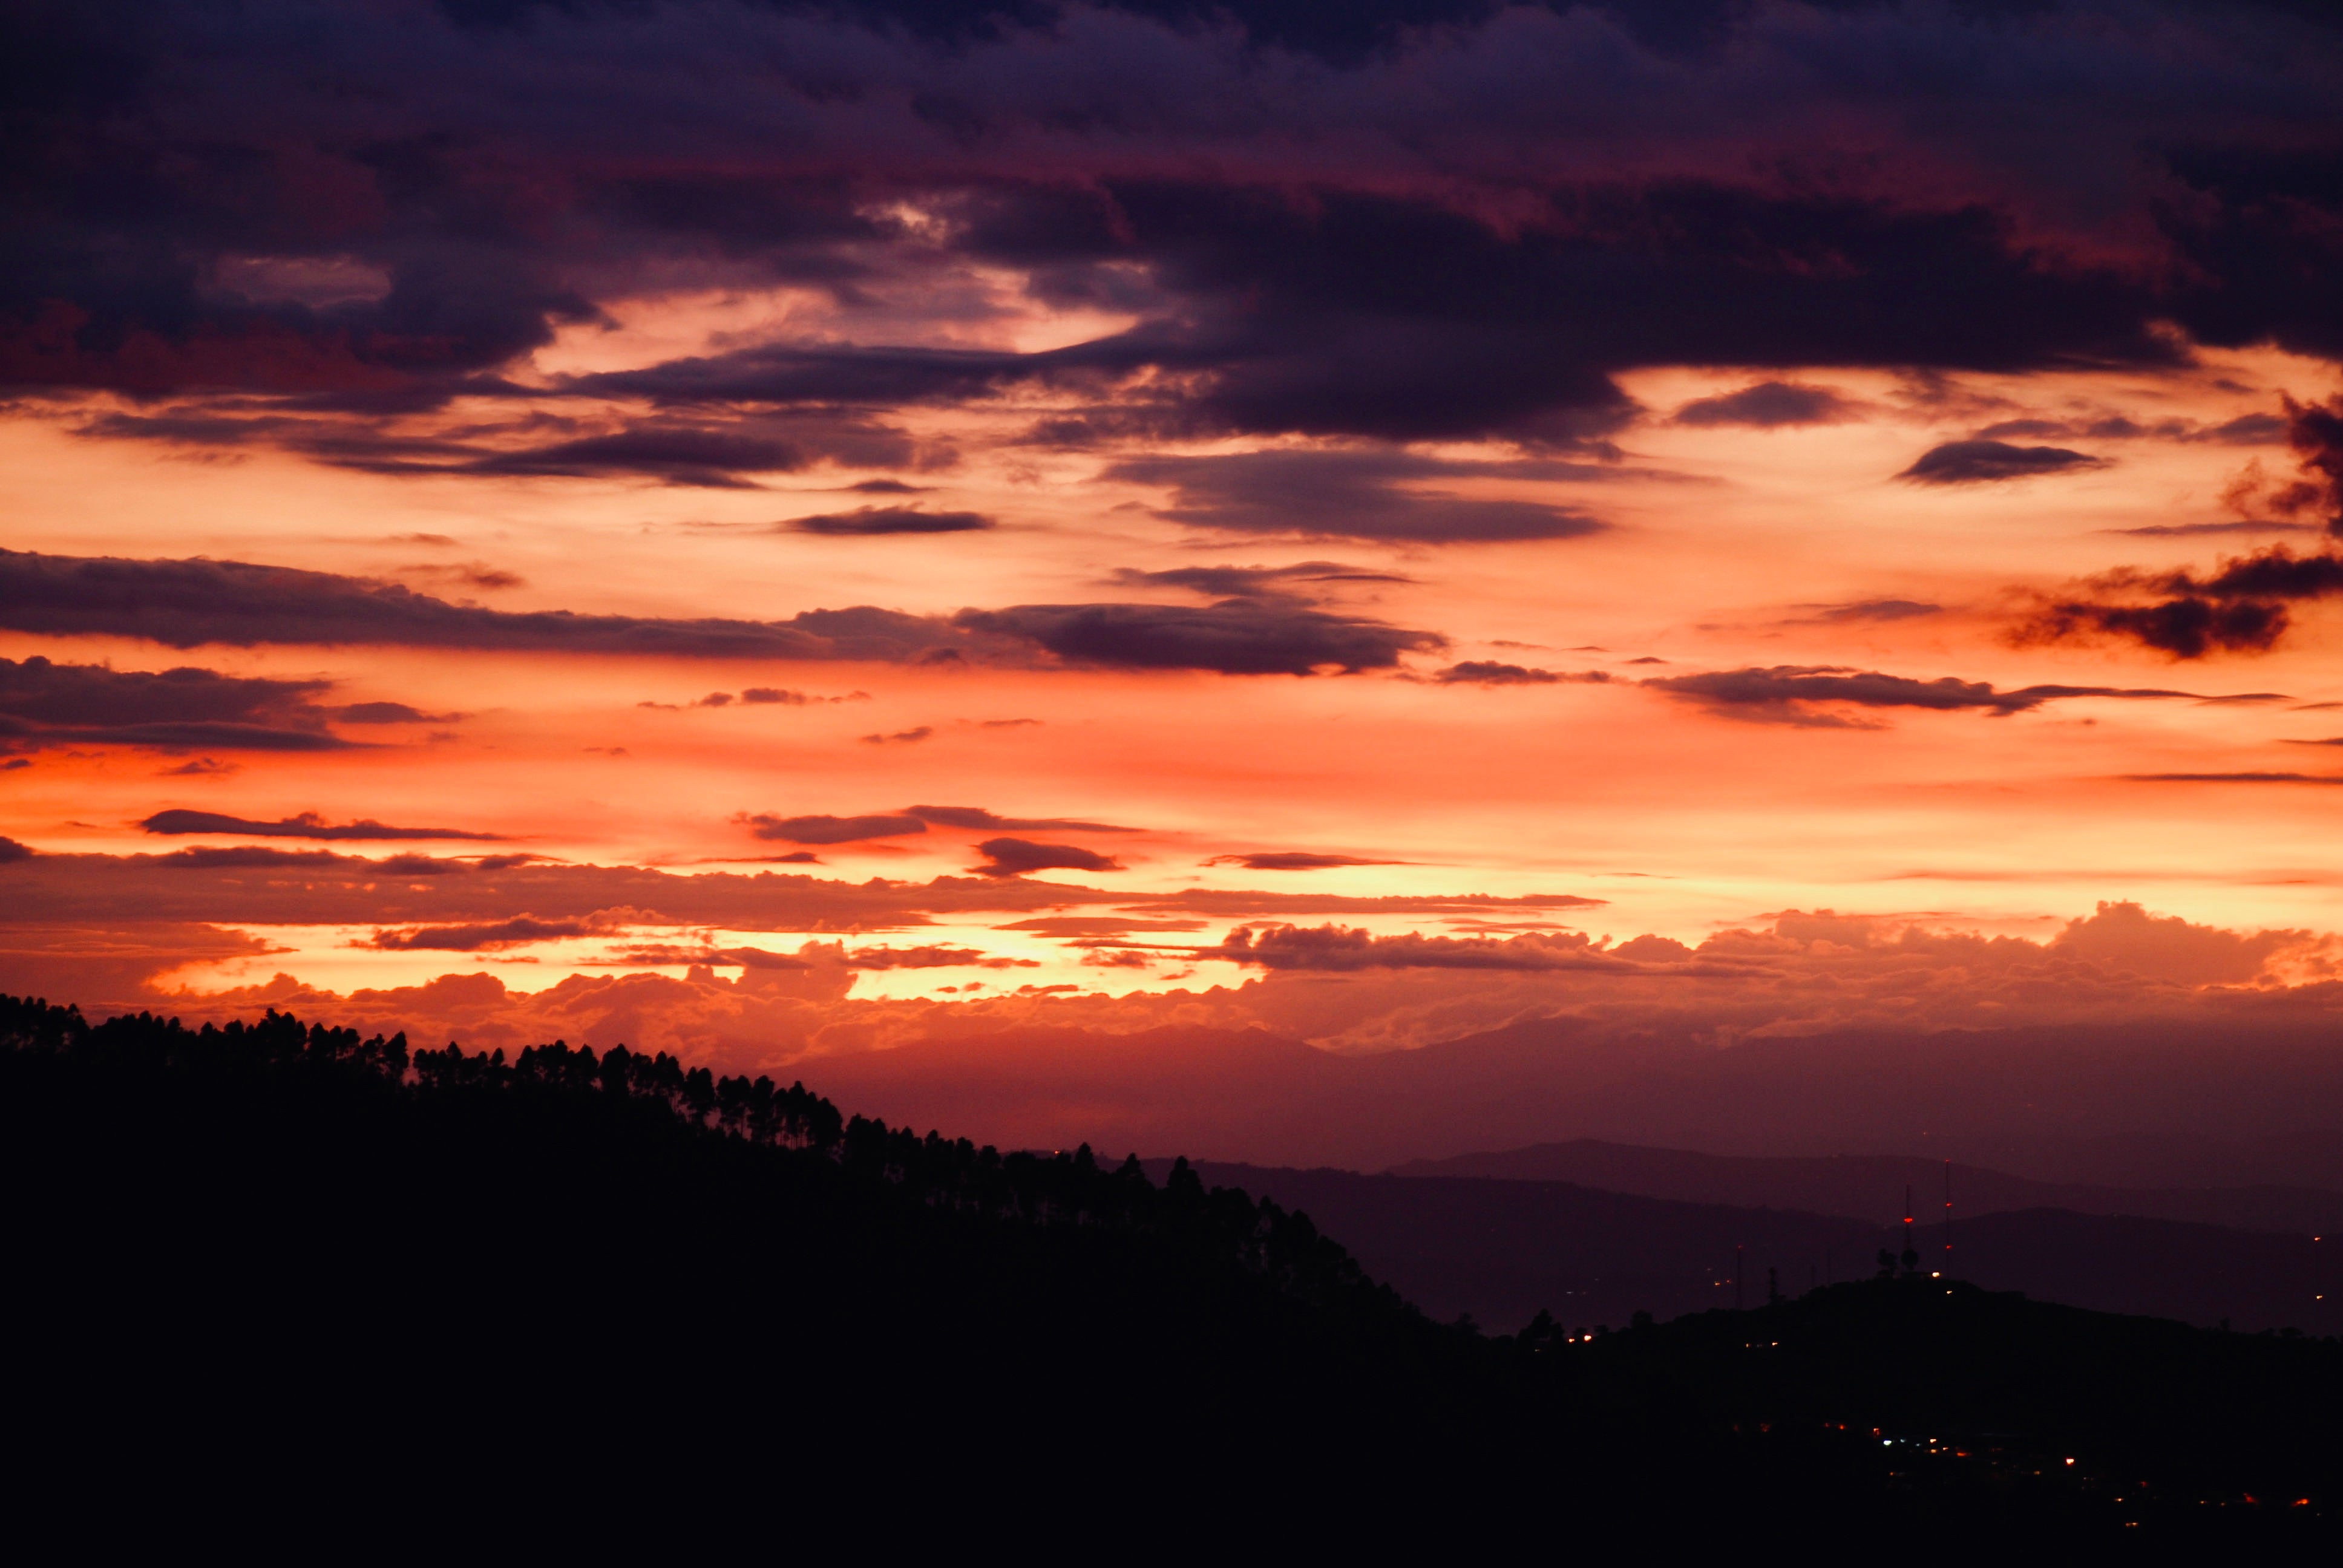 Sunset in Colombia